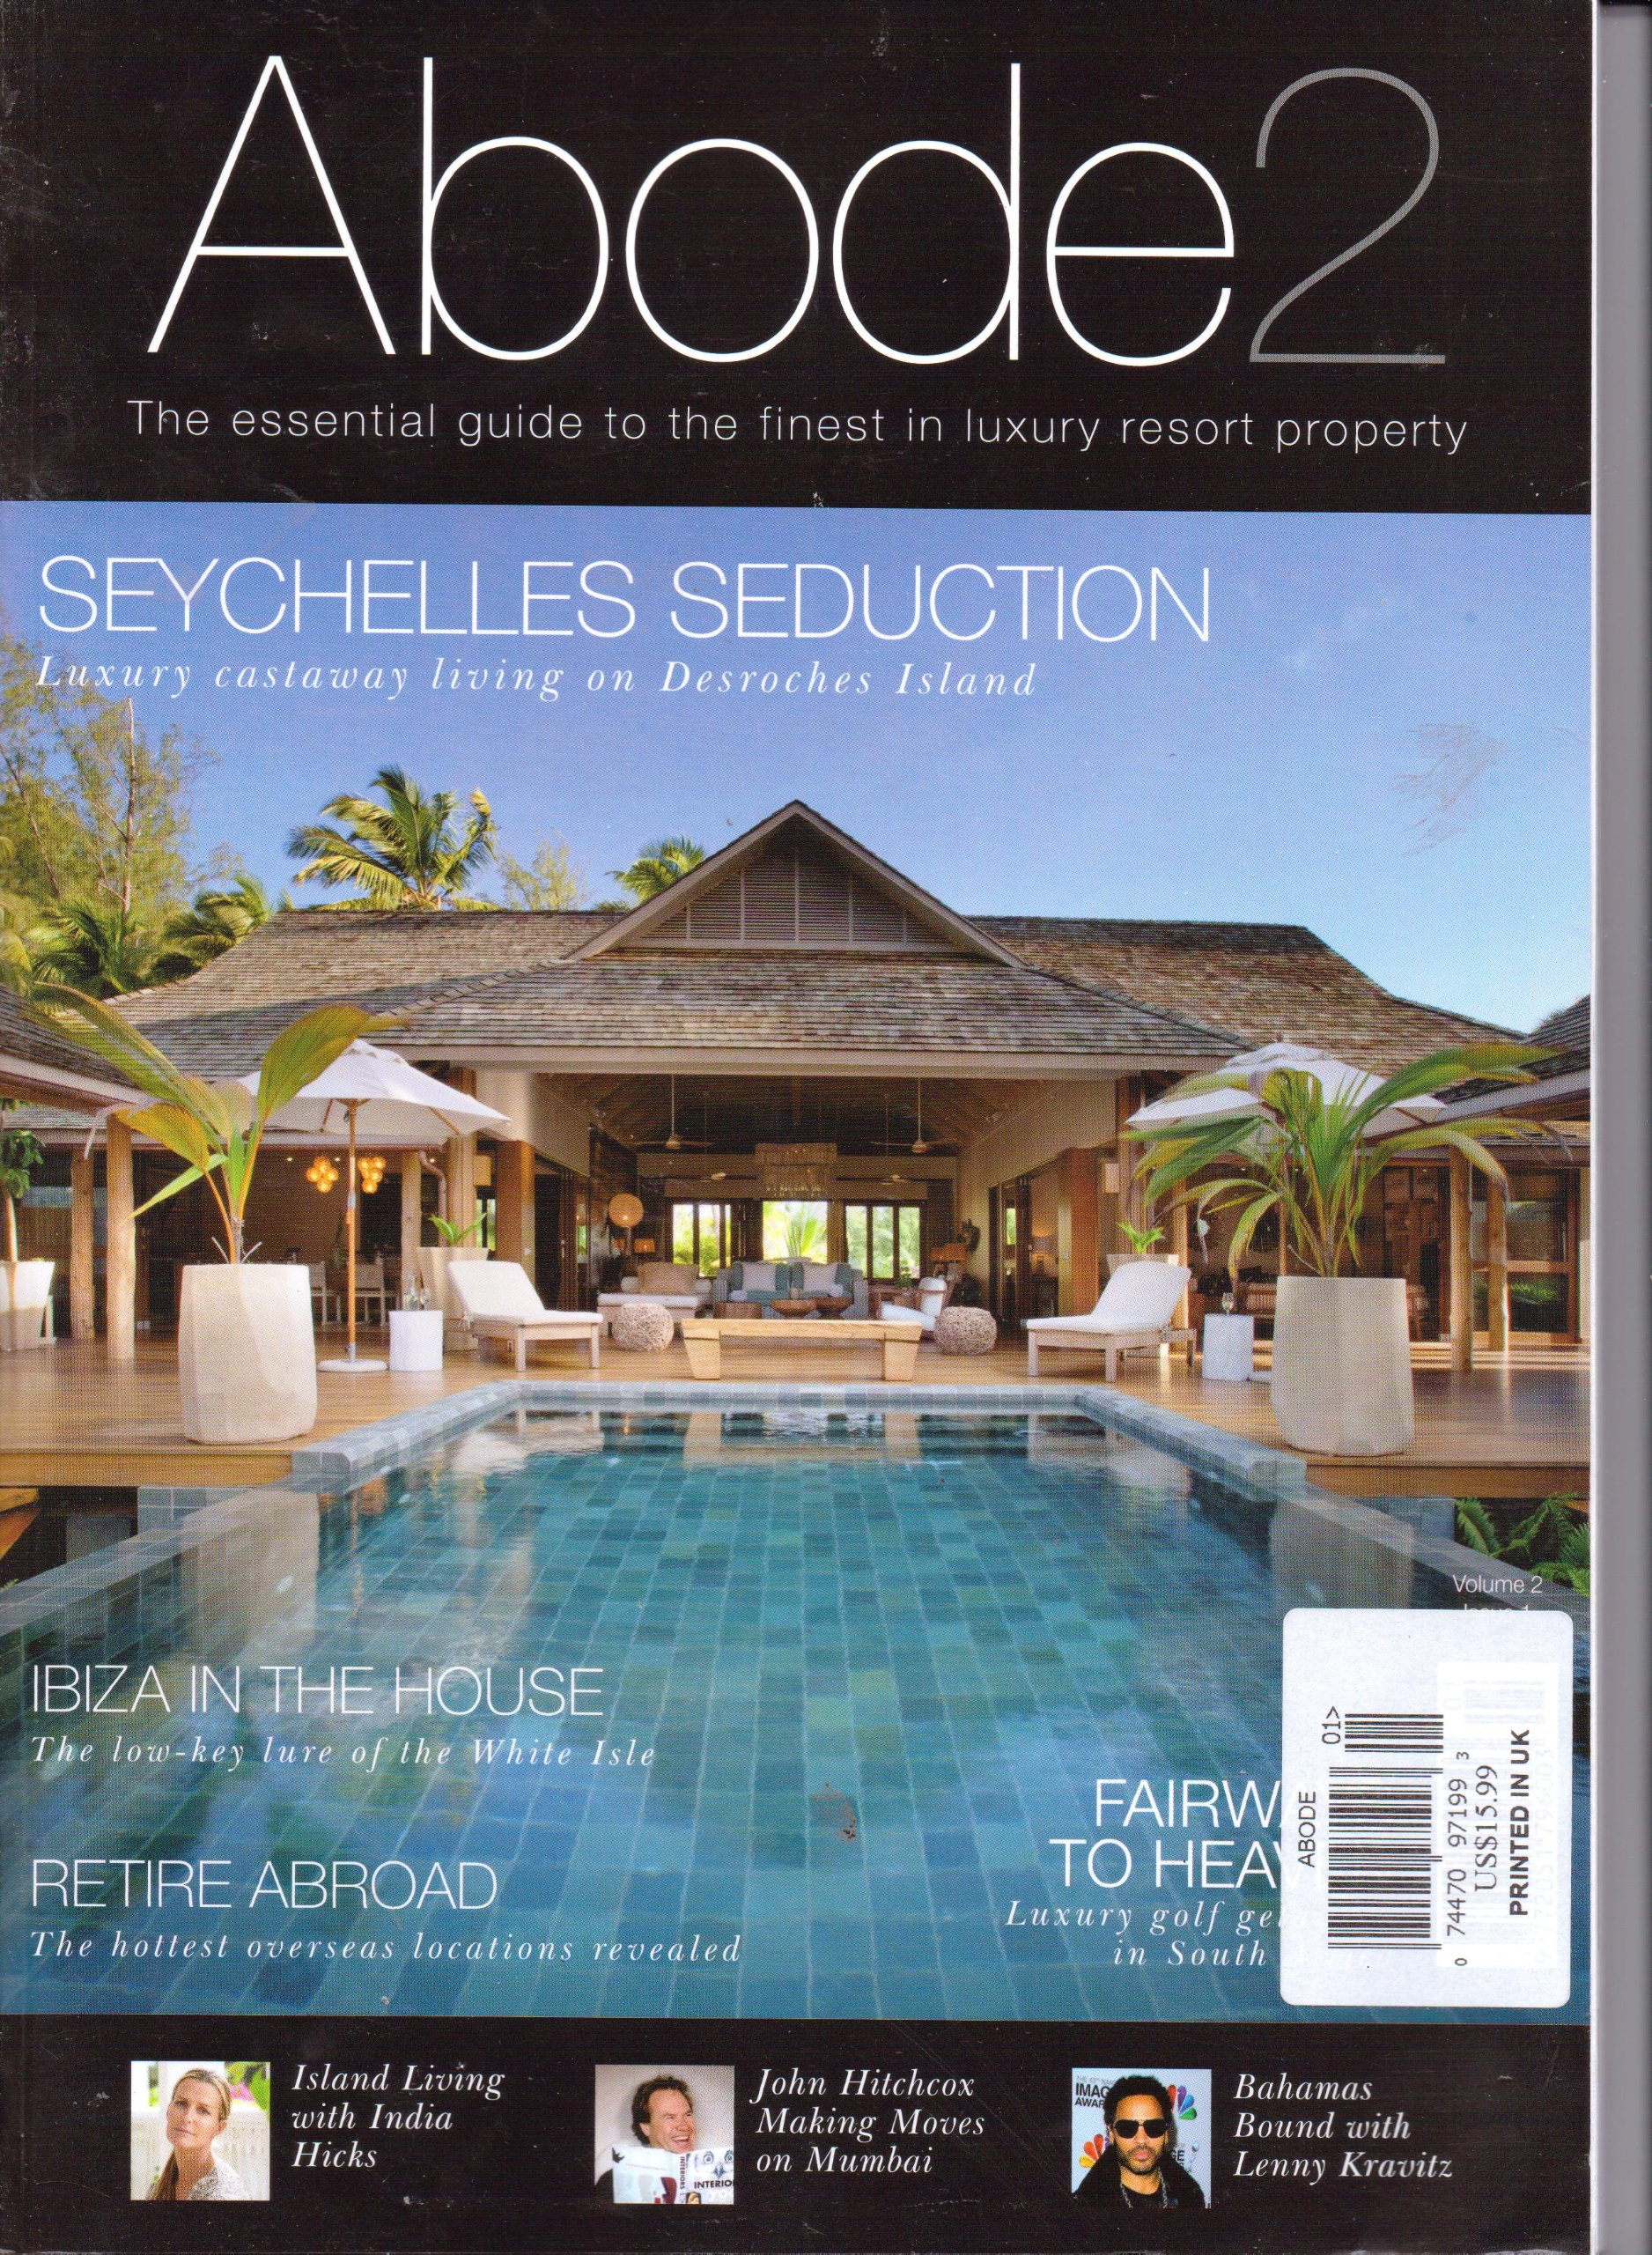 Download ABODE 2 - The Essential Guide To The Finest In Luxury Resort Property. Volume 2. Issue 1. 2013. PDF